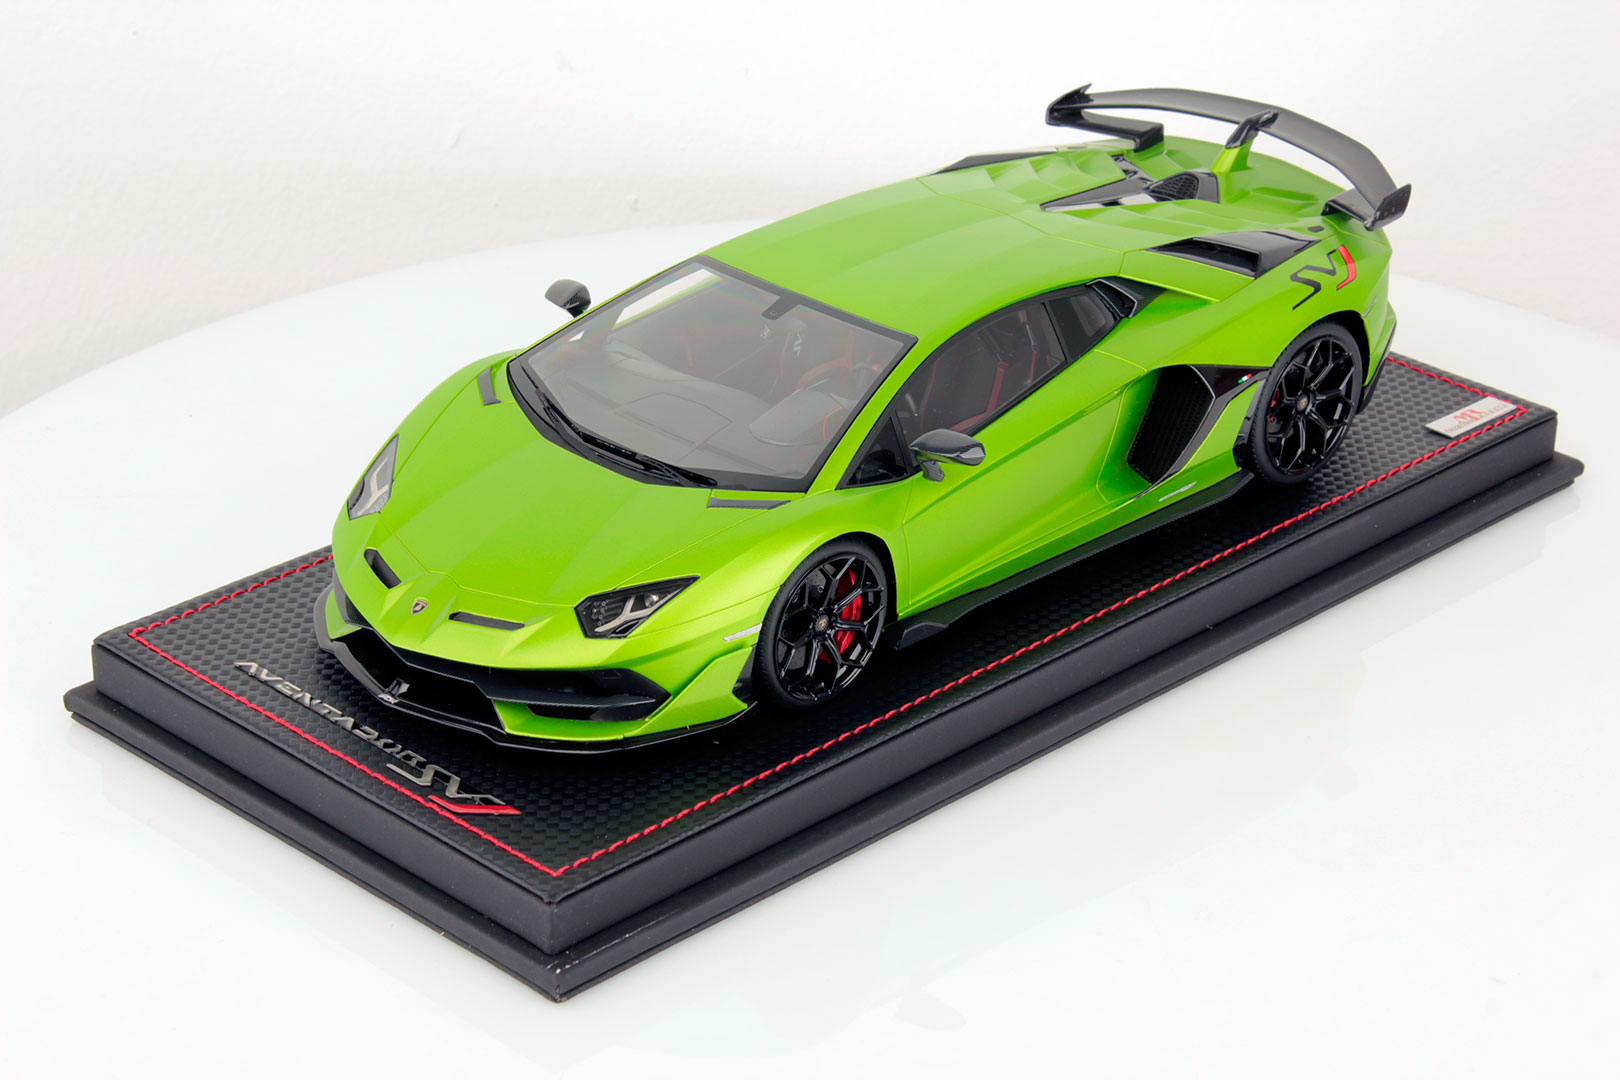 Lamborghini Aventador Svj 1 18 Mr Collection Models